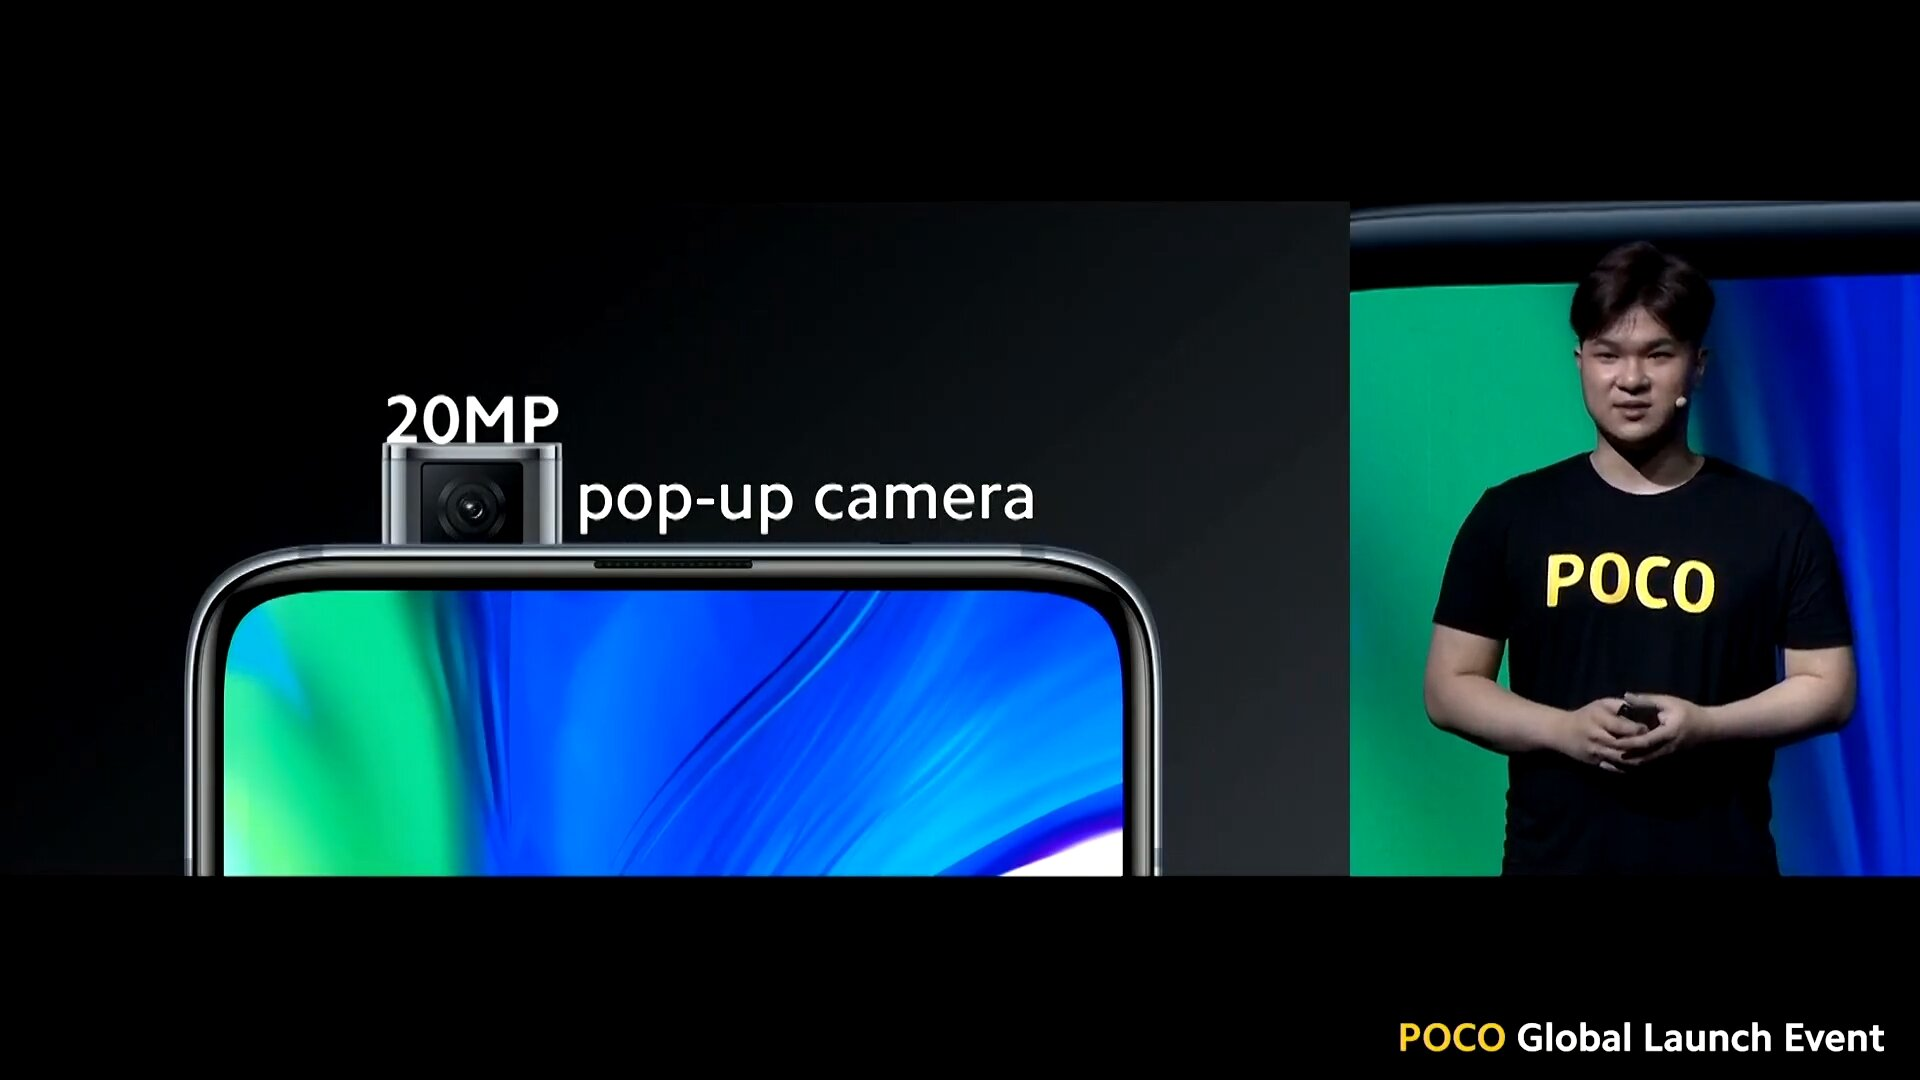 Pop-up-Frontkamera mit 20 Megapixeln